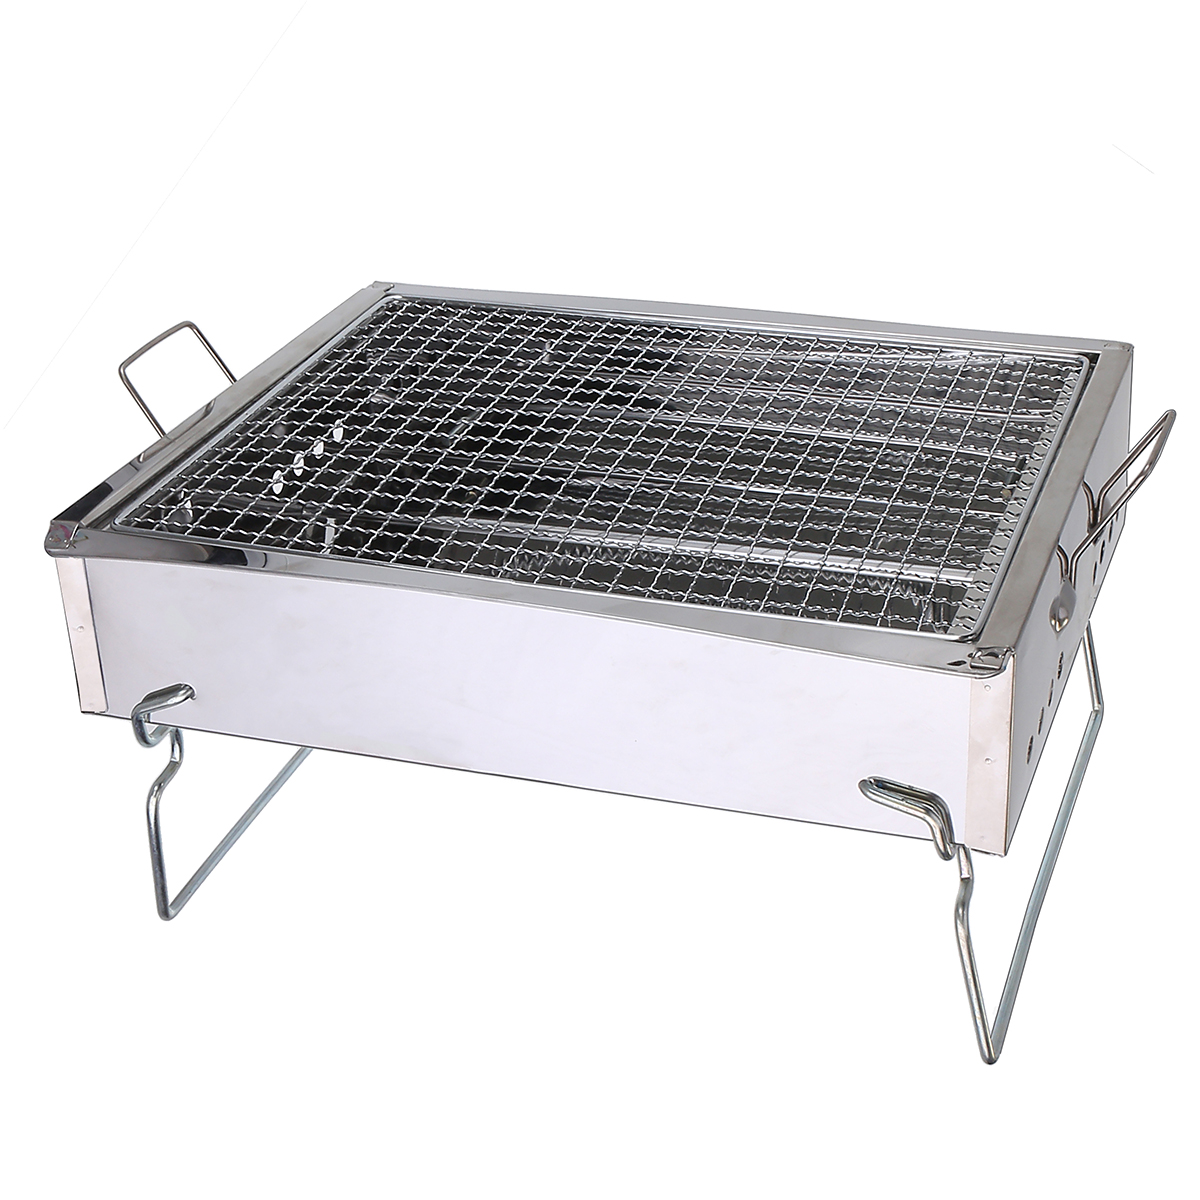 BBQ-Barbecue-Grill-Folding-Portable-Charcoal-Outdoor-Camping-Burner-Patio-Stove